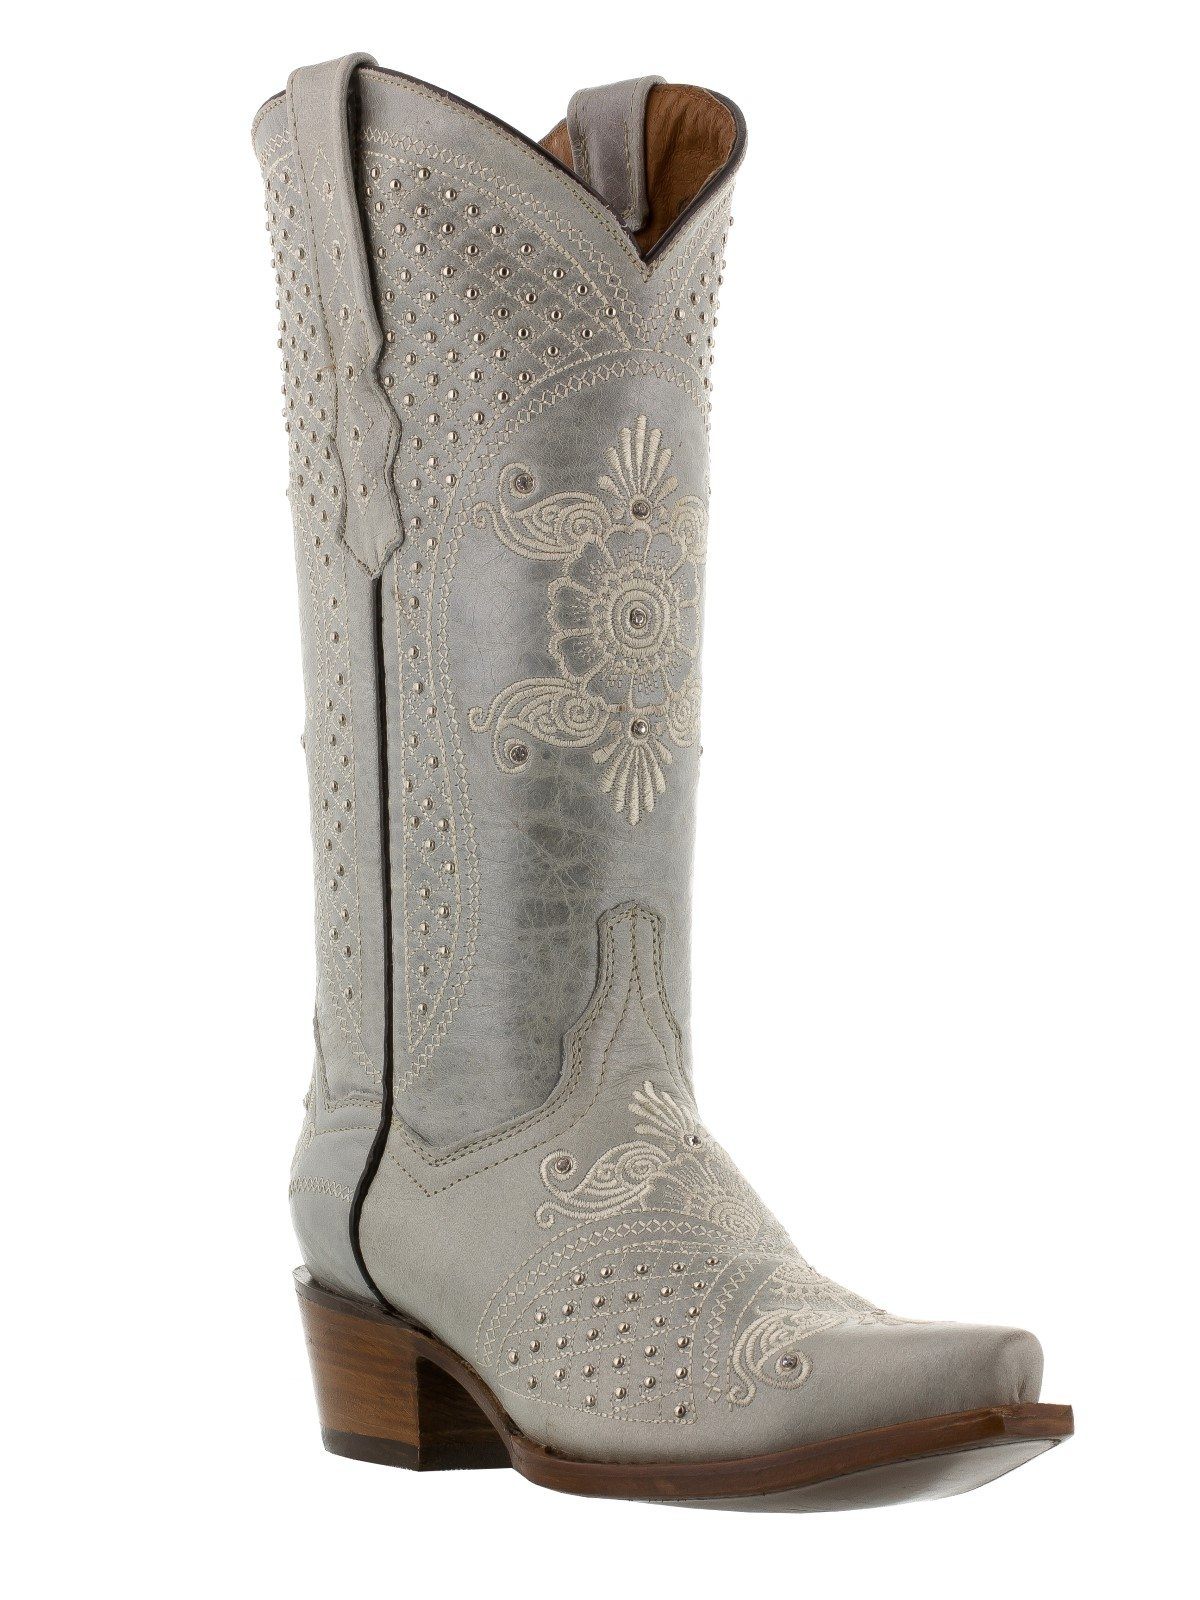 womens rhinestone cowboy boots wedding cowboy boots Womens Off White Leather Western Cowboy Wedding Boots Studs Rodeo Rhinestones